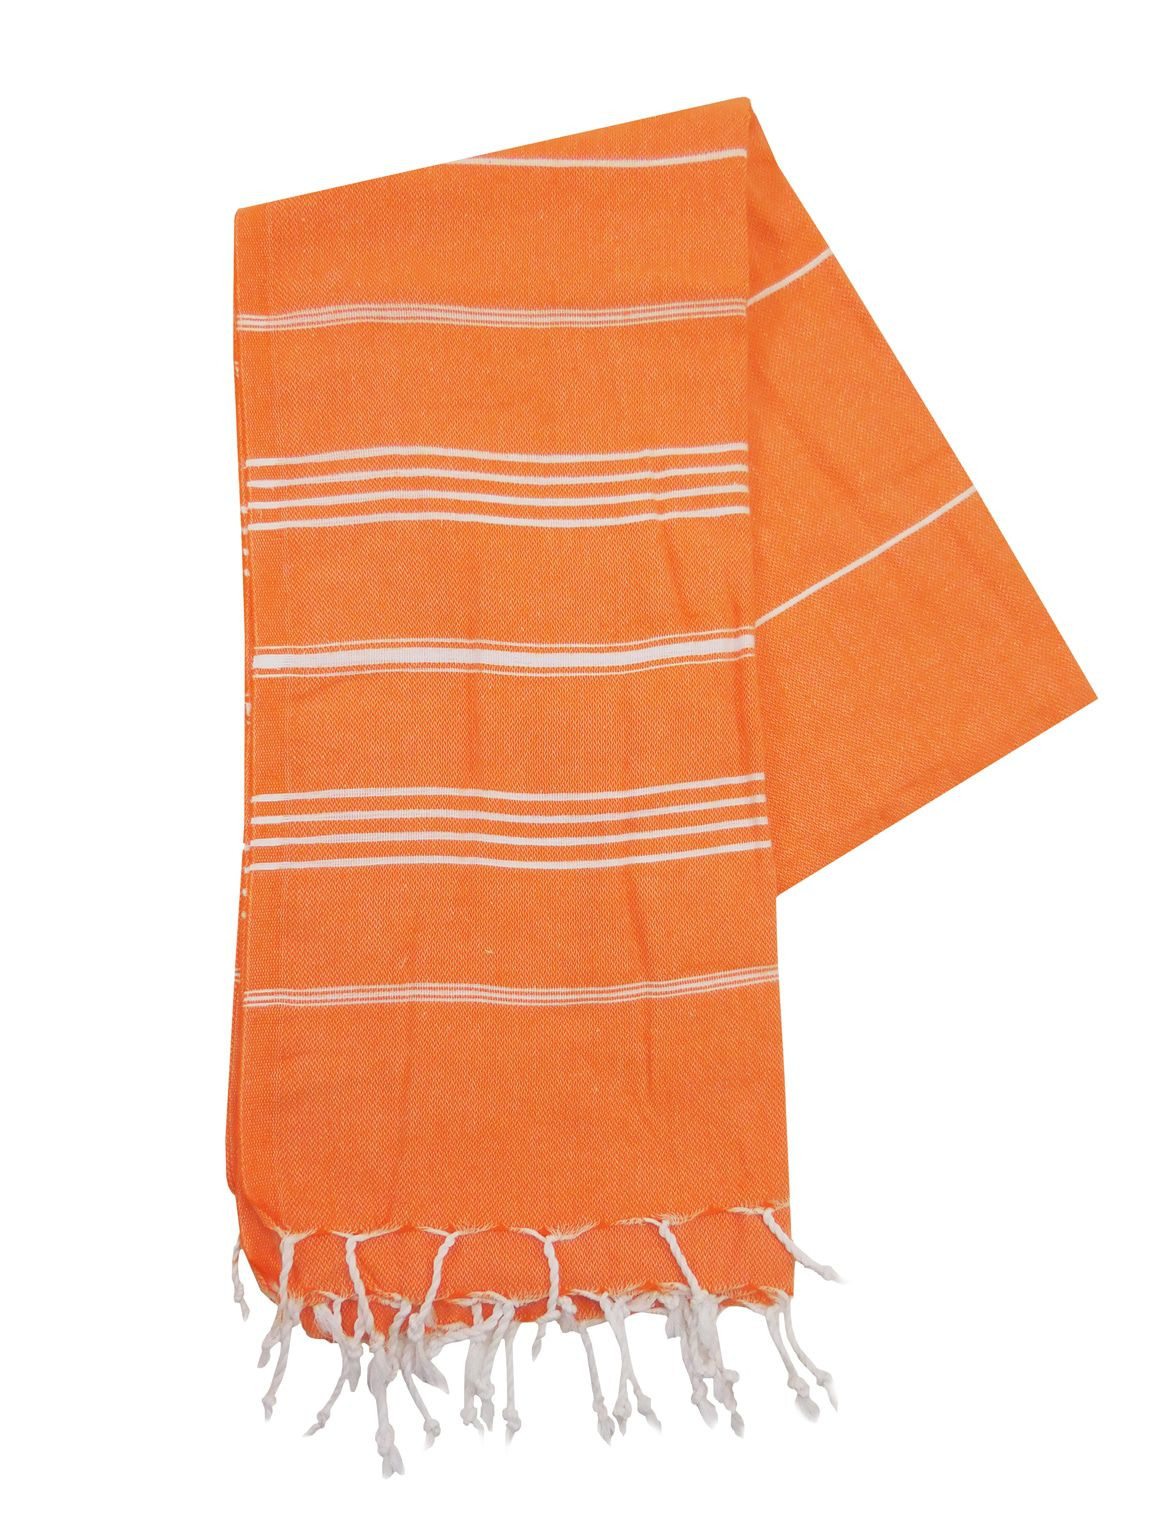 Een Dag Actie - The One Towelling Hamamdoek Oranje/Wit